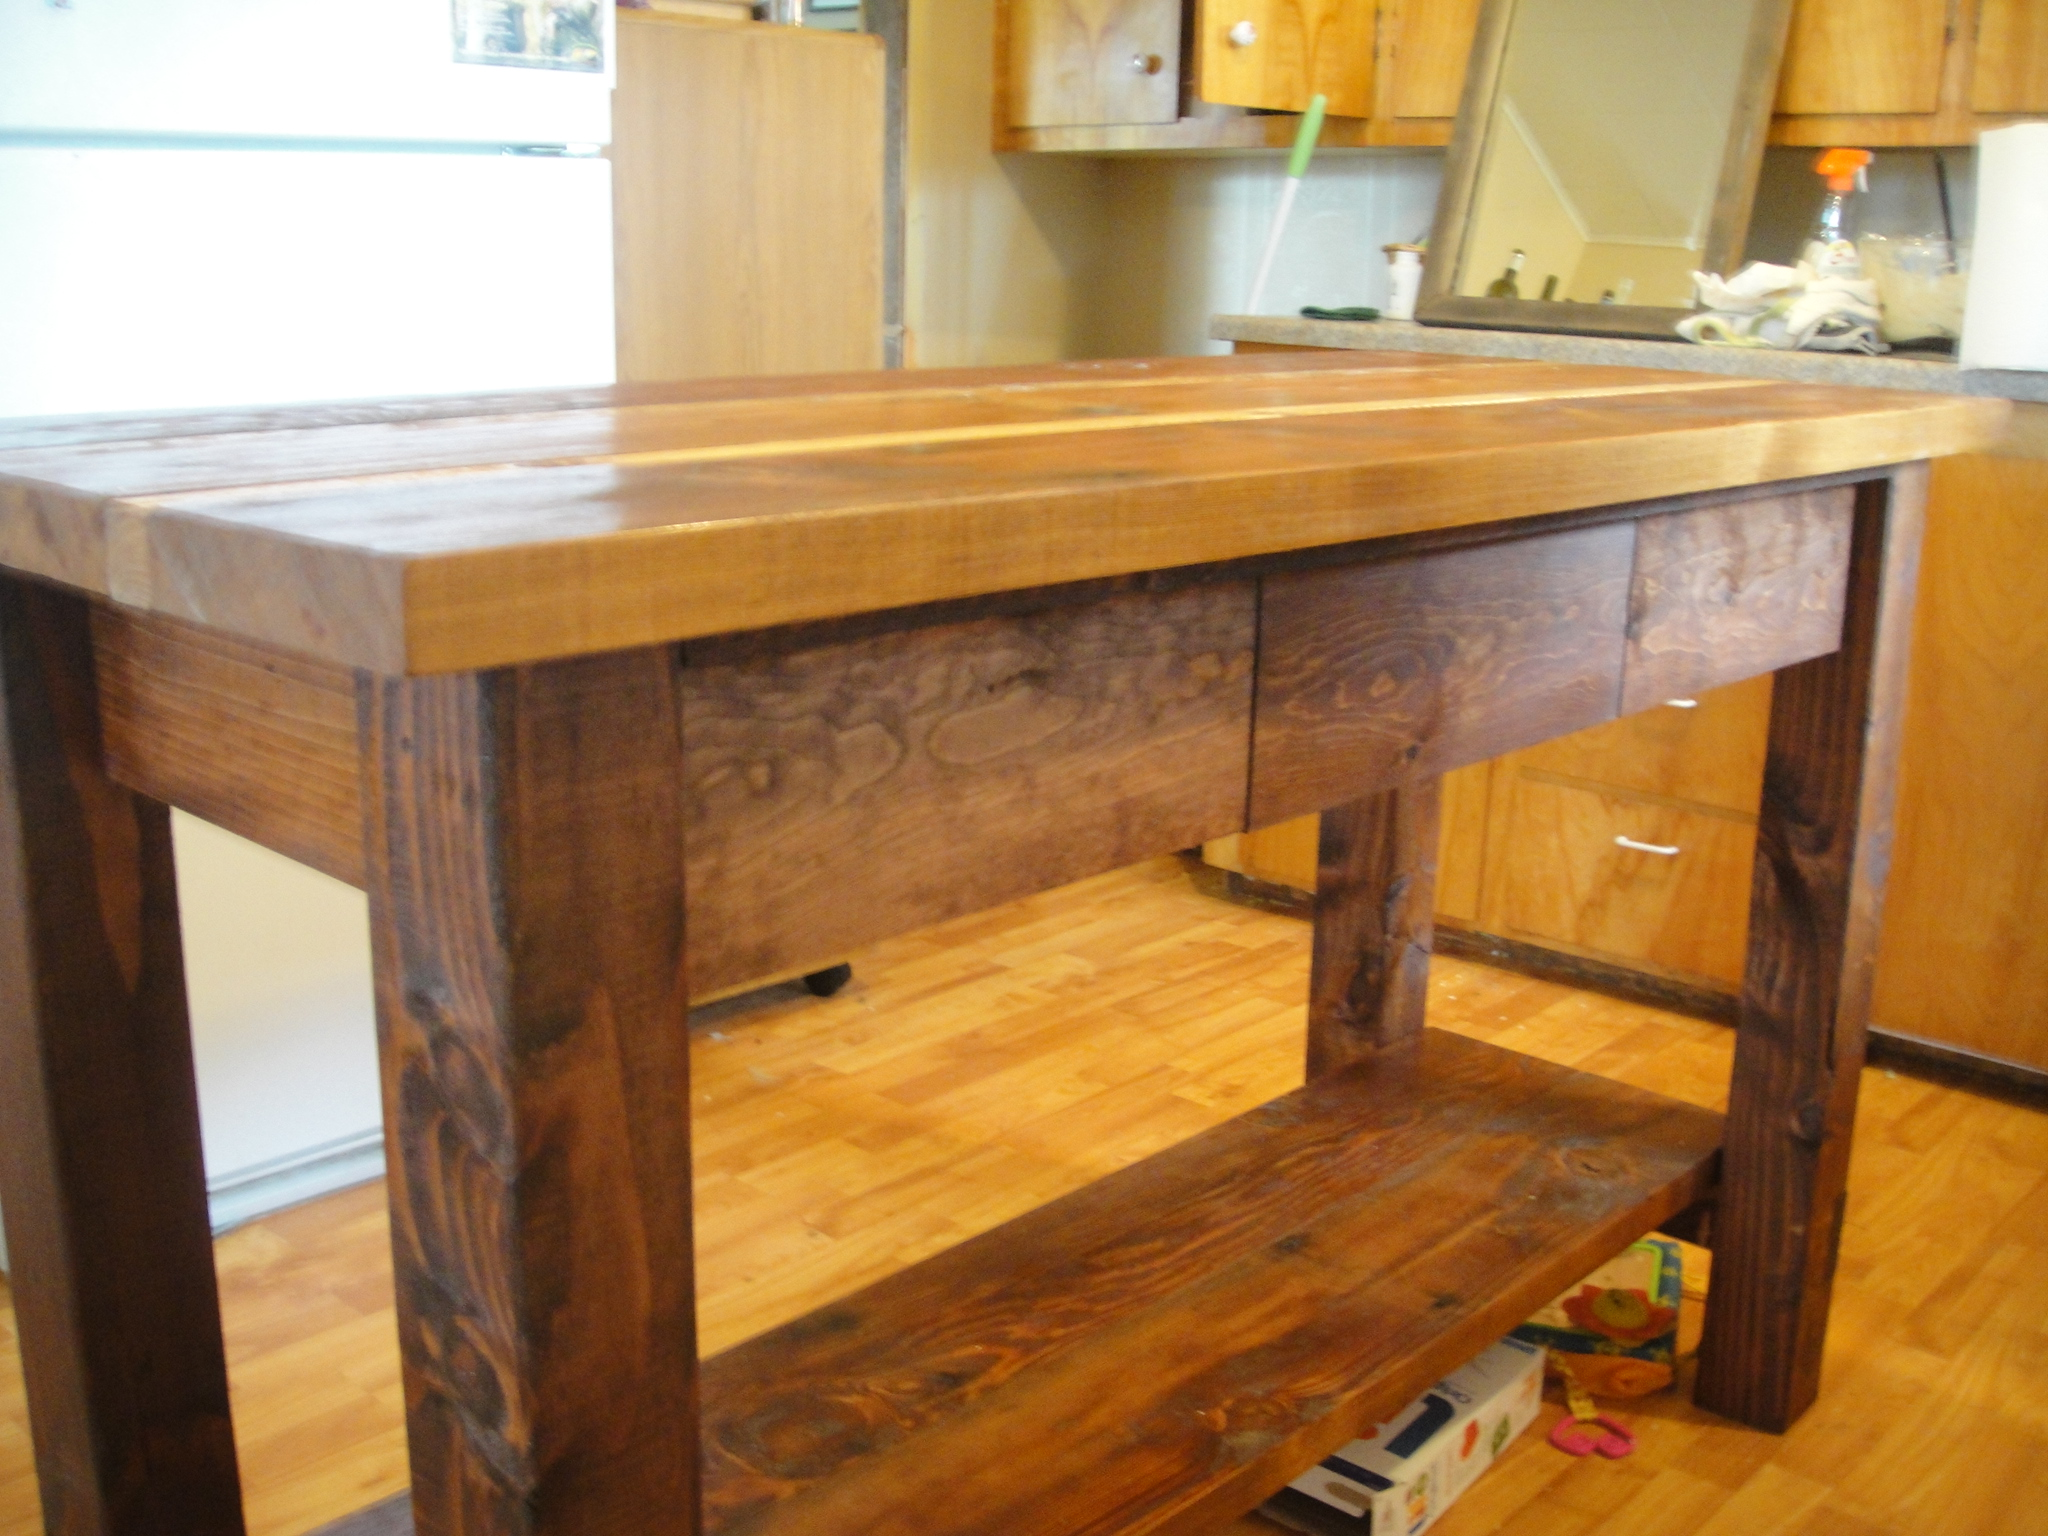 Ana white kitchen island from reclaimed wood diy projects for Cheap diy kitchen island ideas